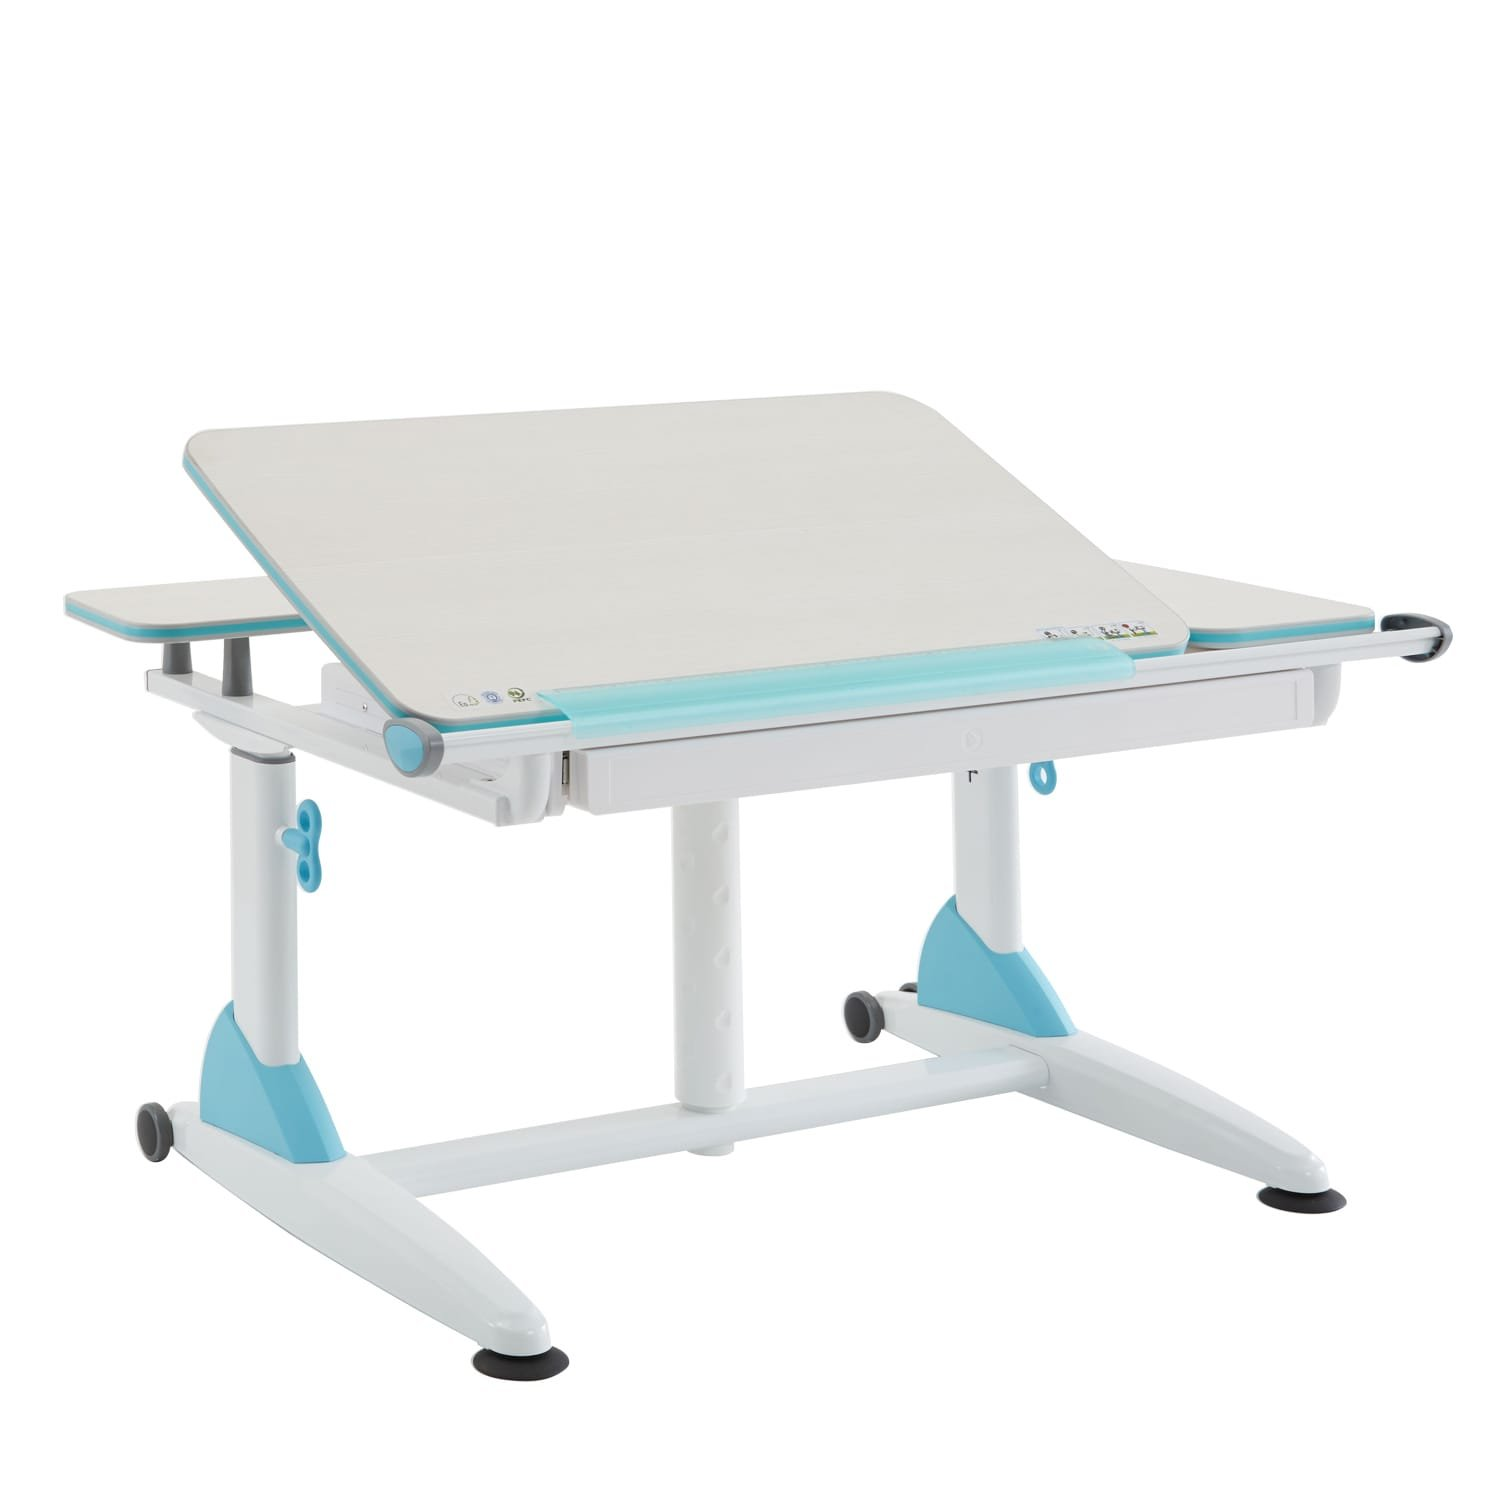 TCT Nanotec Kid 2 Youth Sit to Stand Kids Ergonomic Desk with Drawer Blue